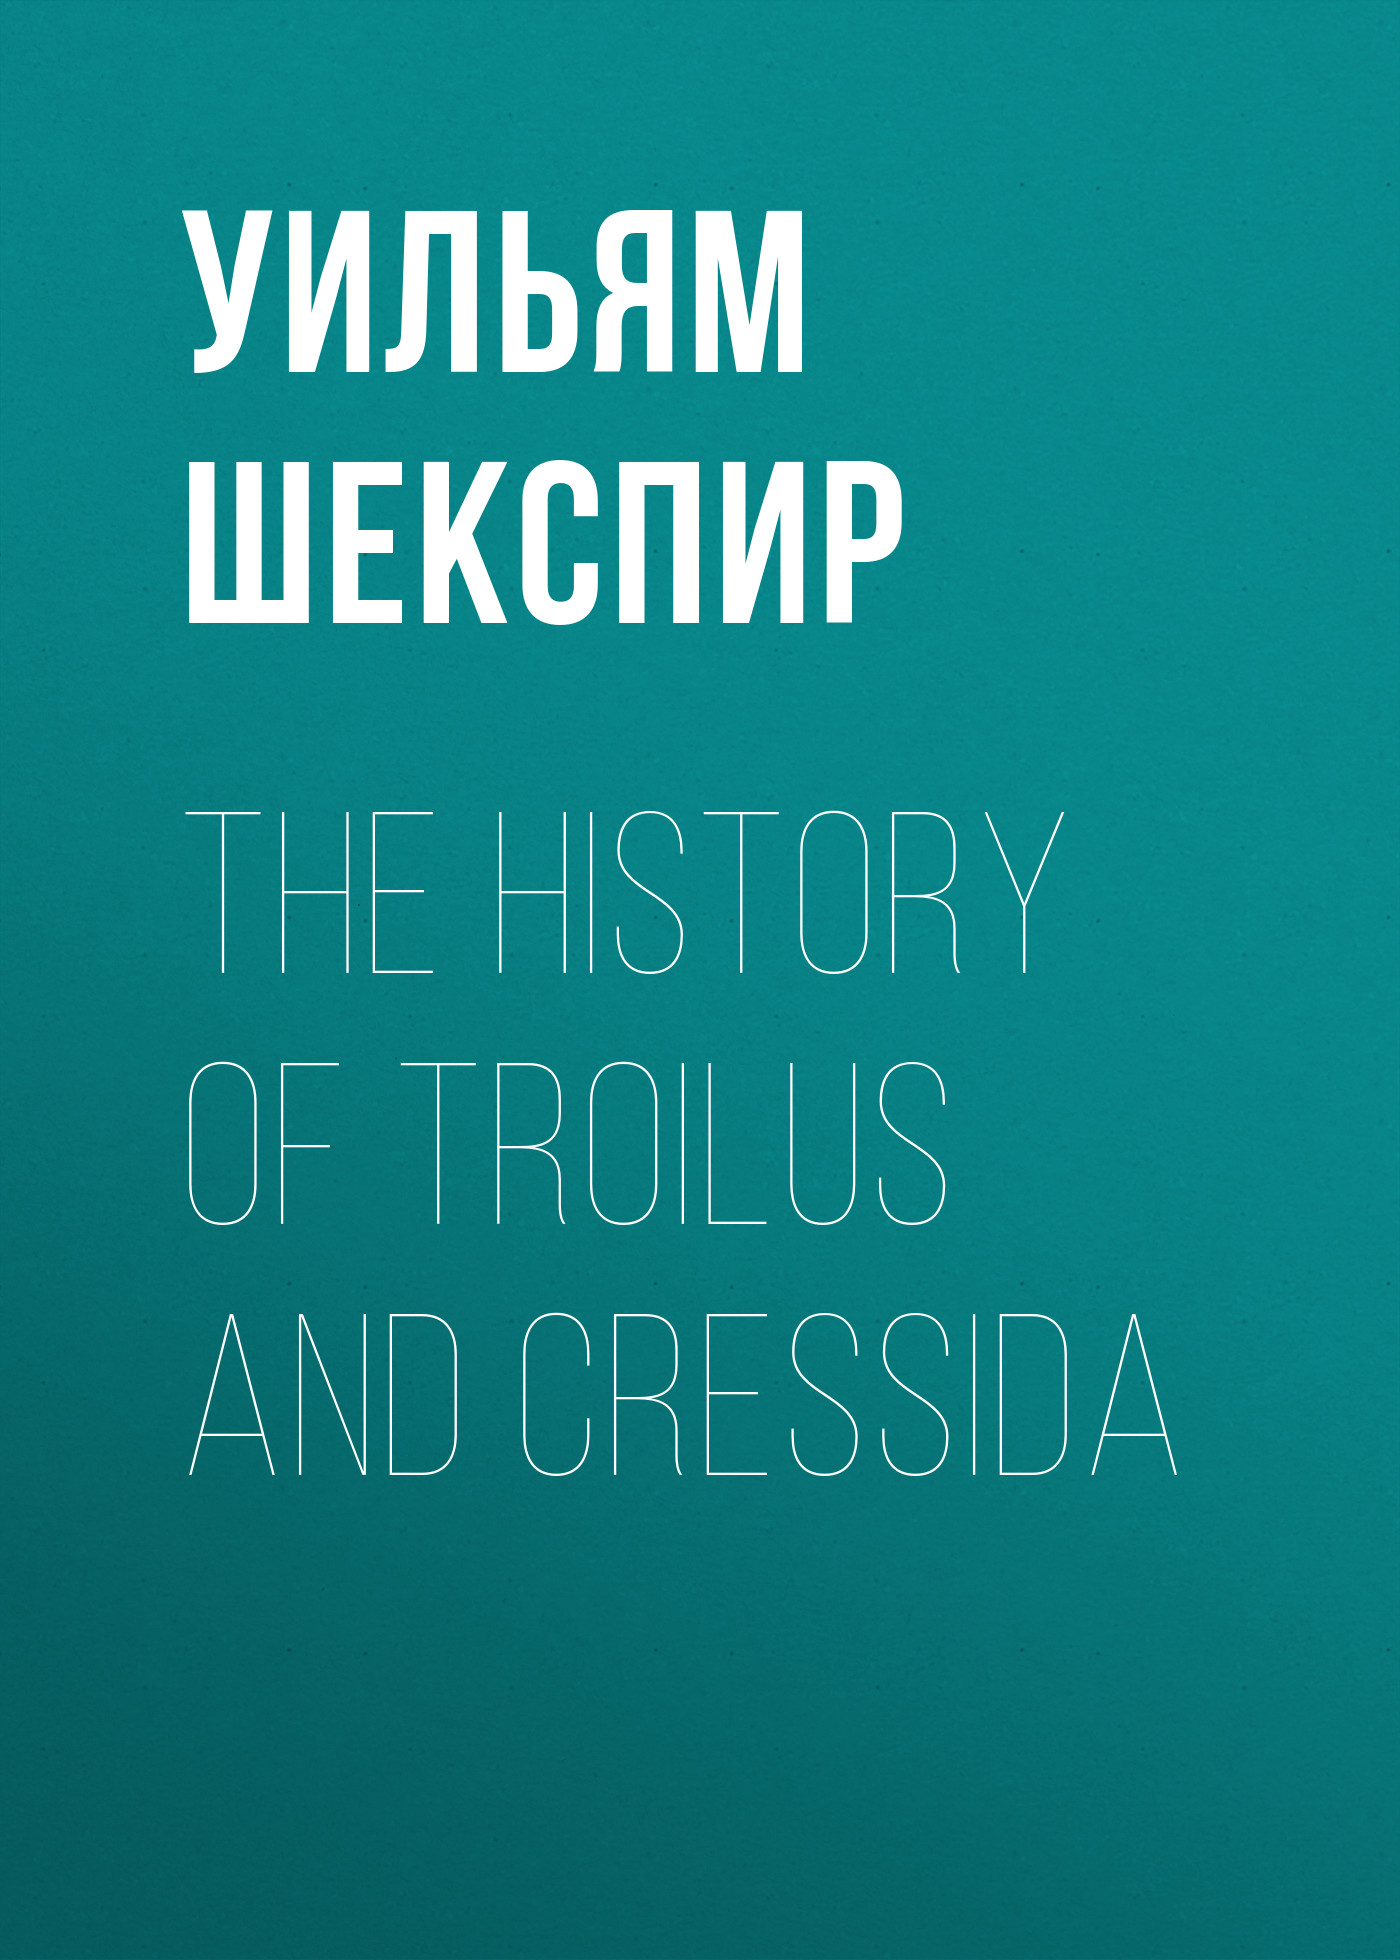 Уильям Шекспир The History of Troilus and Cressida уильям шекспир джон донн эдит ситвелл альфред хаусман дилан томас эмили дикинсон андрей корчевский the snapshot снимок